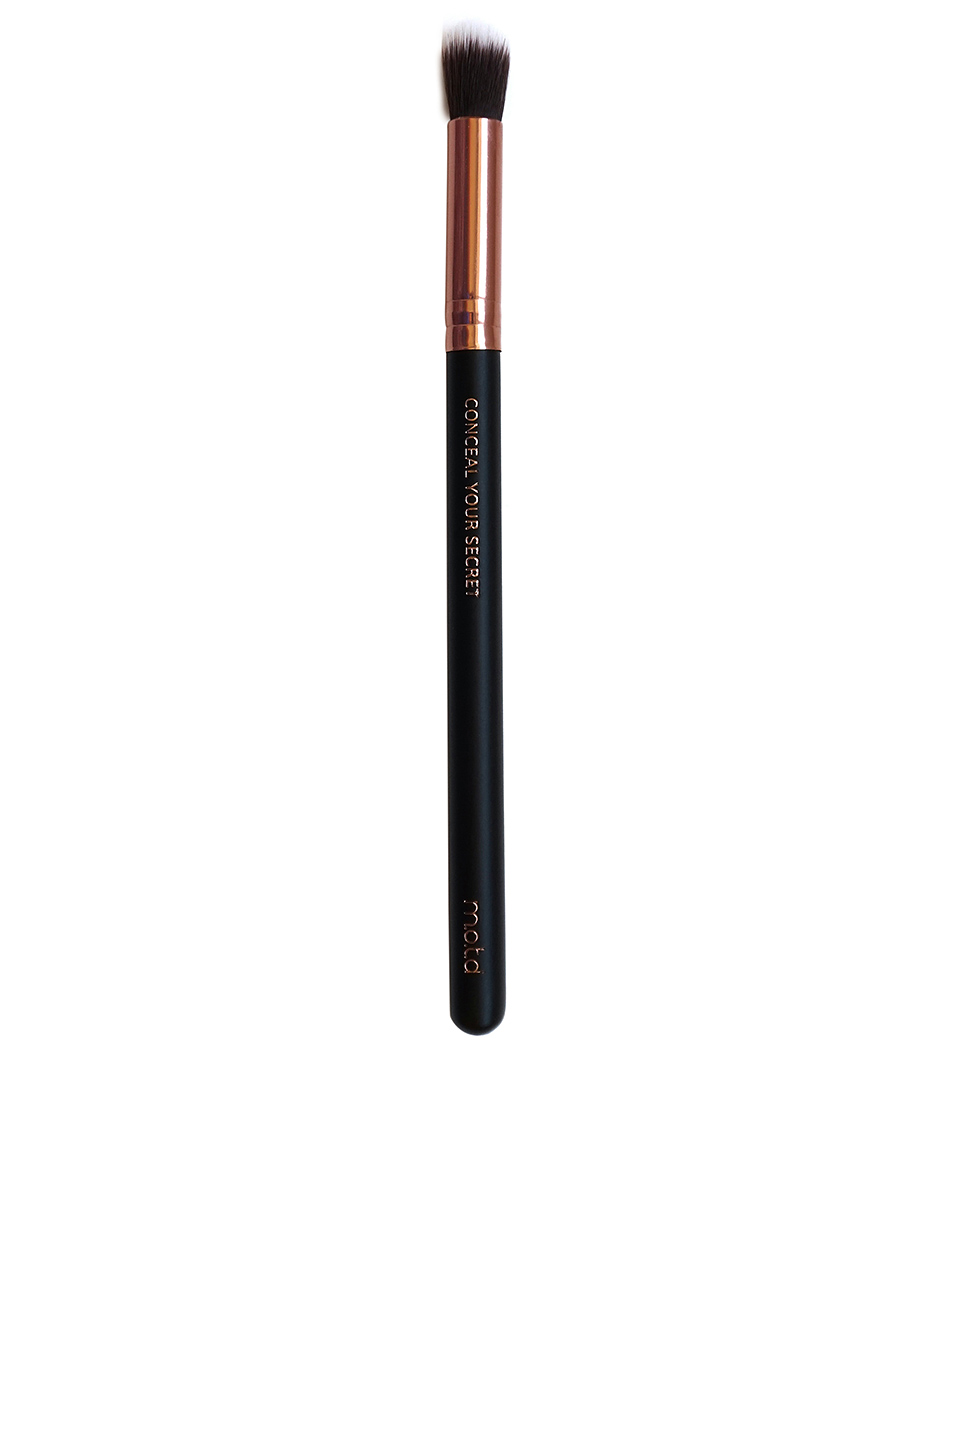 M.O.T.D. Cosmetics Conceal Your Secret Concealer Brush in All